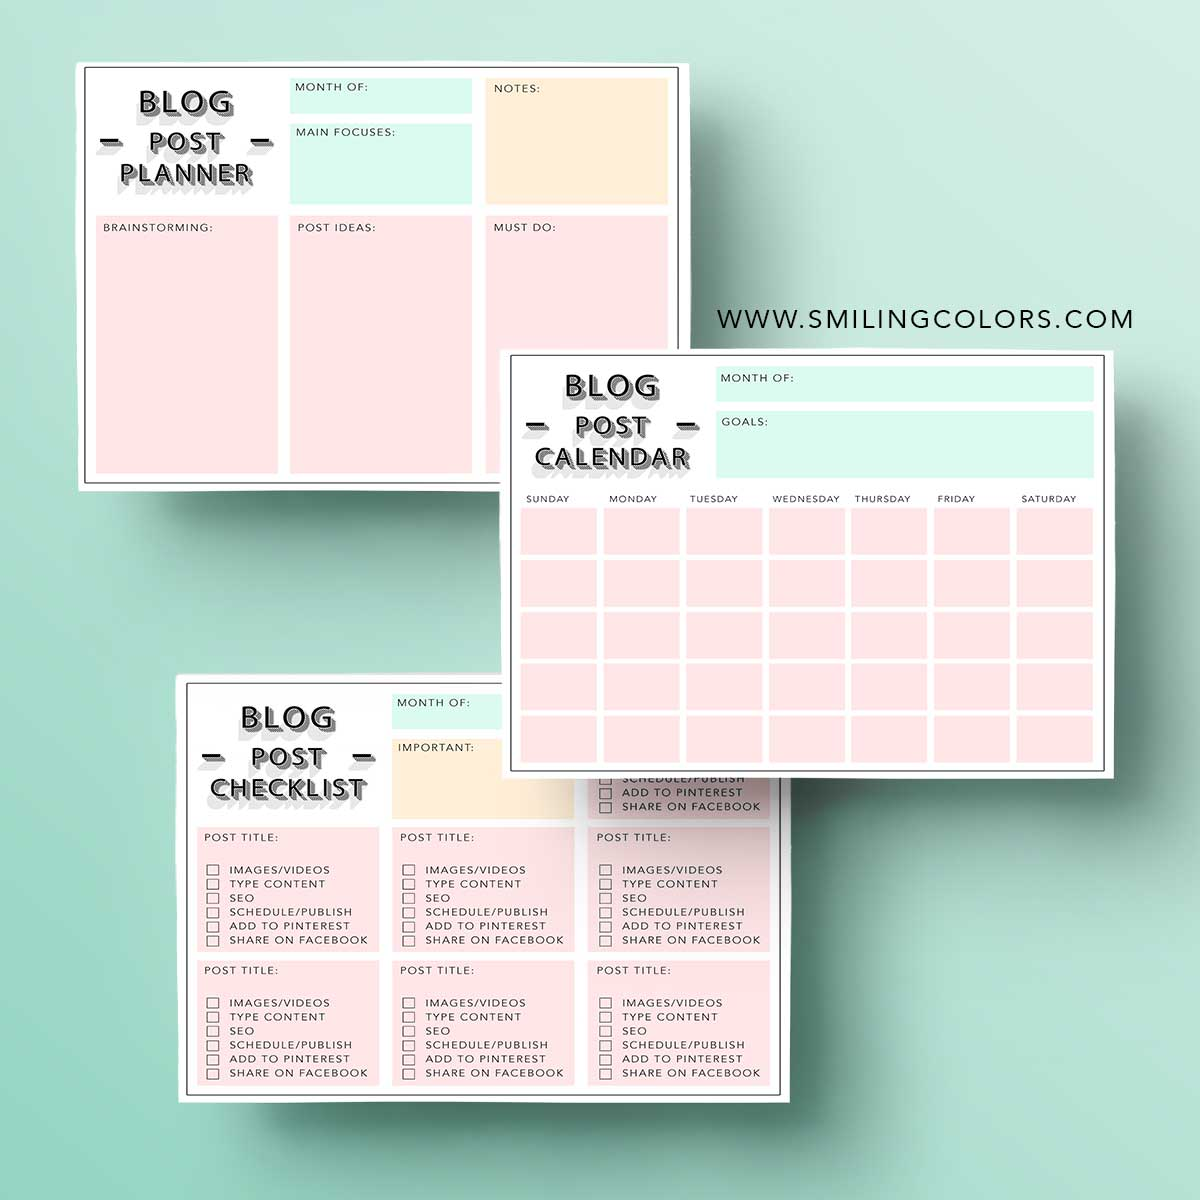 photograph regarding Blog Planner Printable referred to as Cost-free weblog planner printables in direction of guidance on your own obtain well prepared